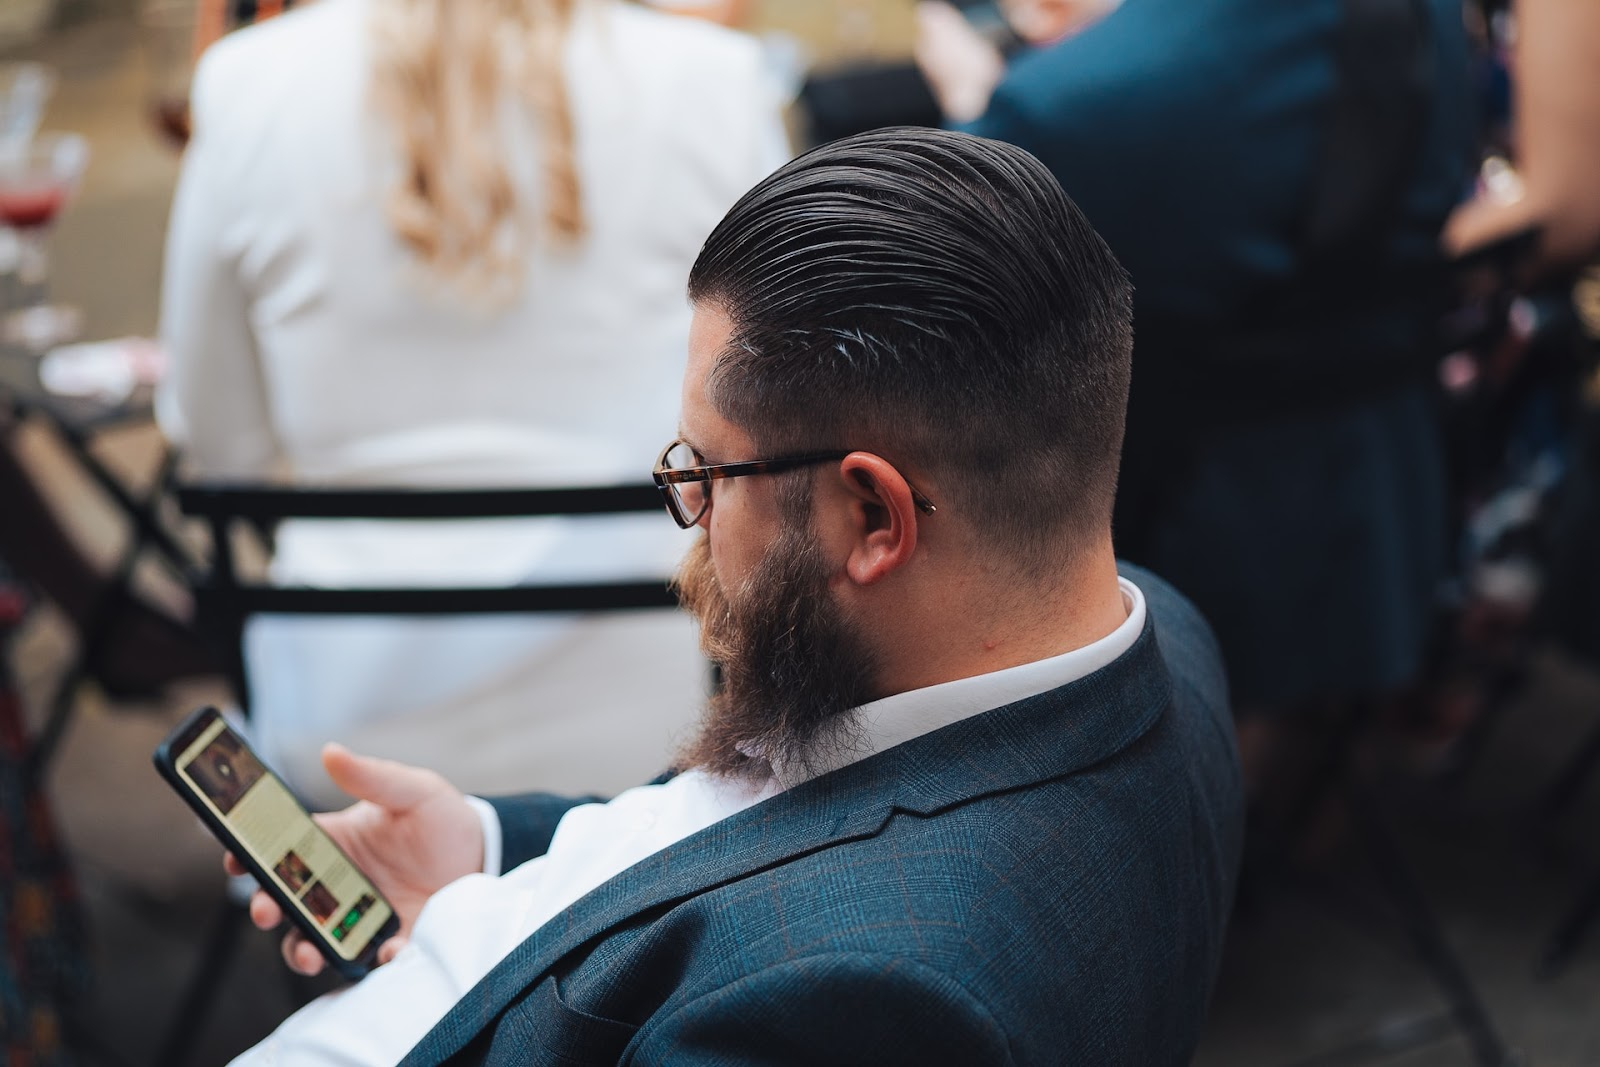 a man in a suit sits in a chair and stares at his phone